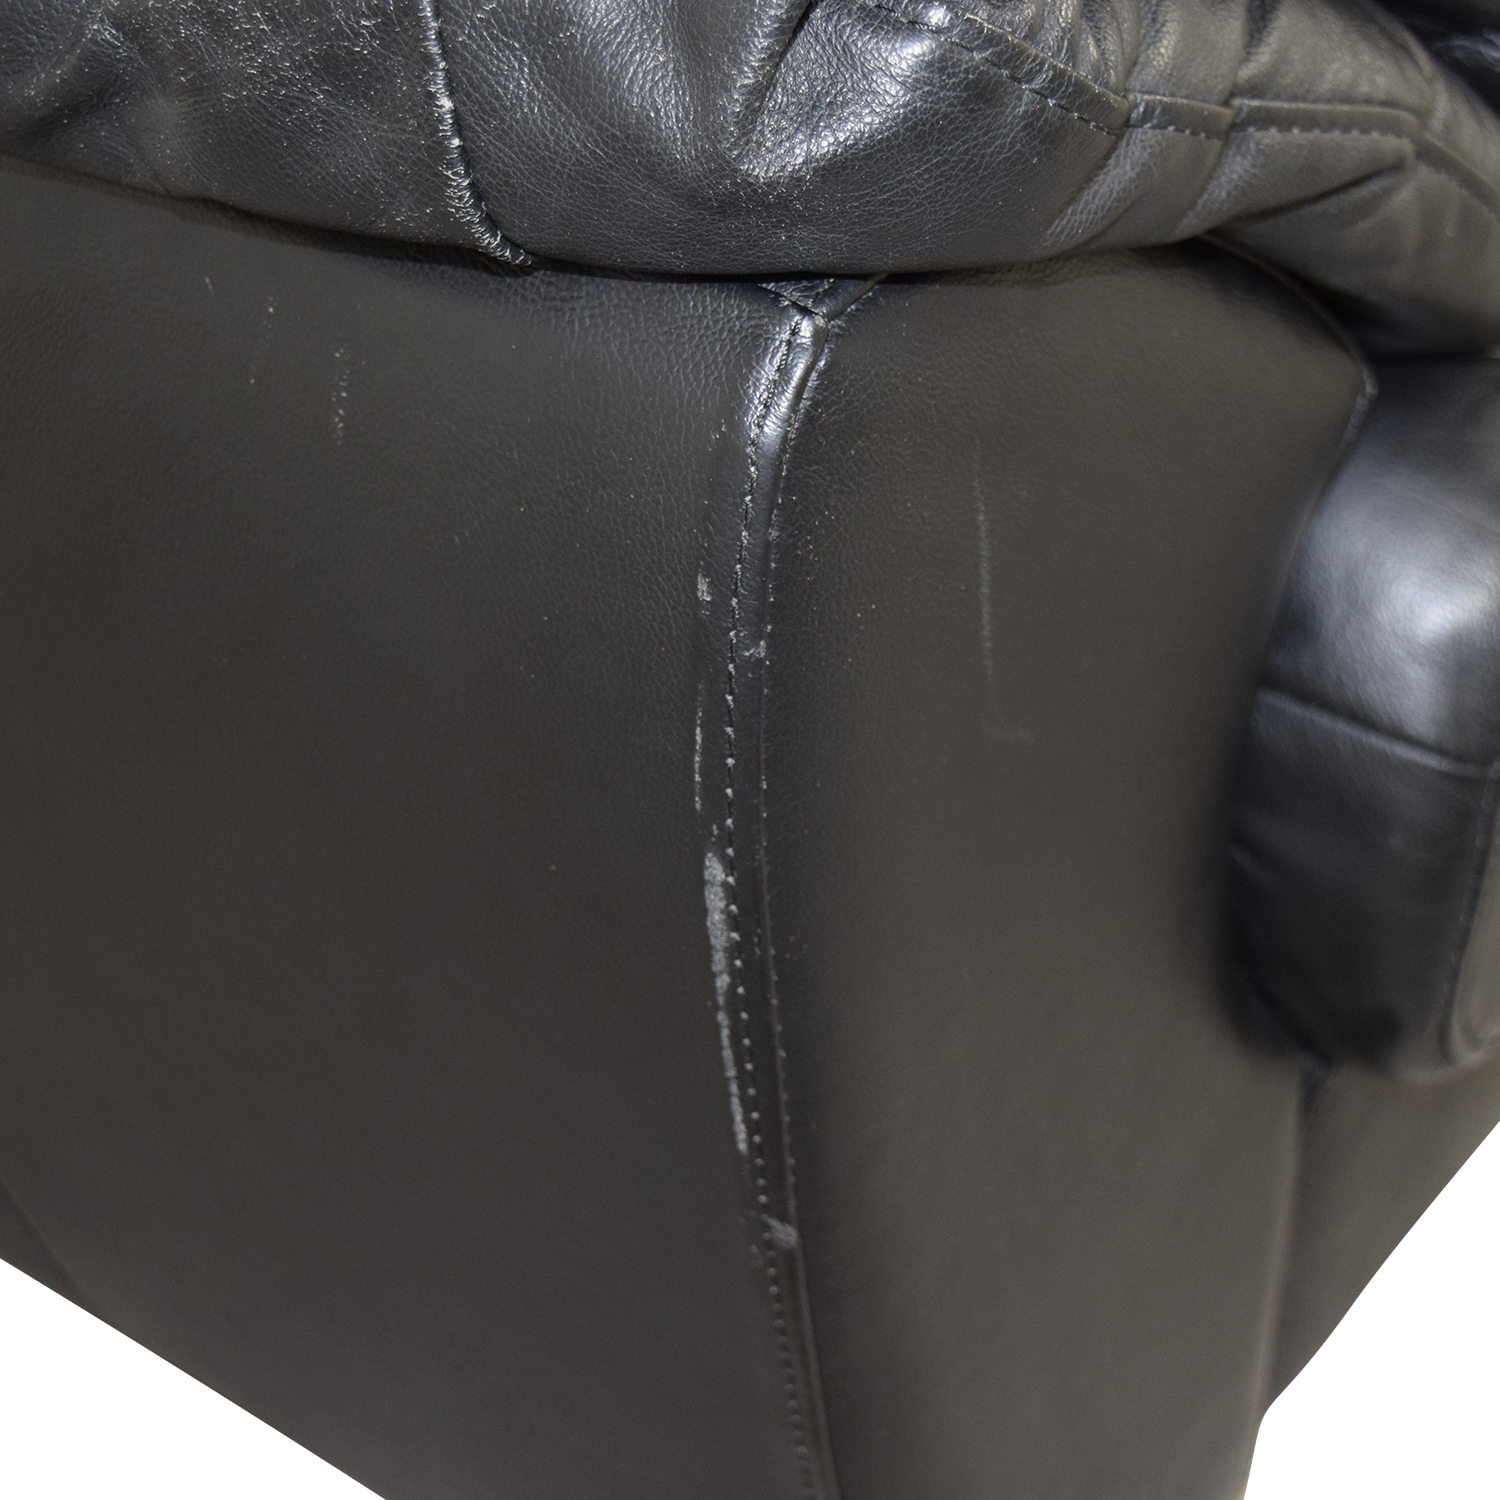 35% OFF Raymour & Flanigan Raymour & Flanigan Black Leather